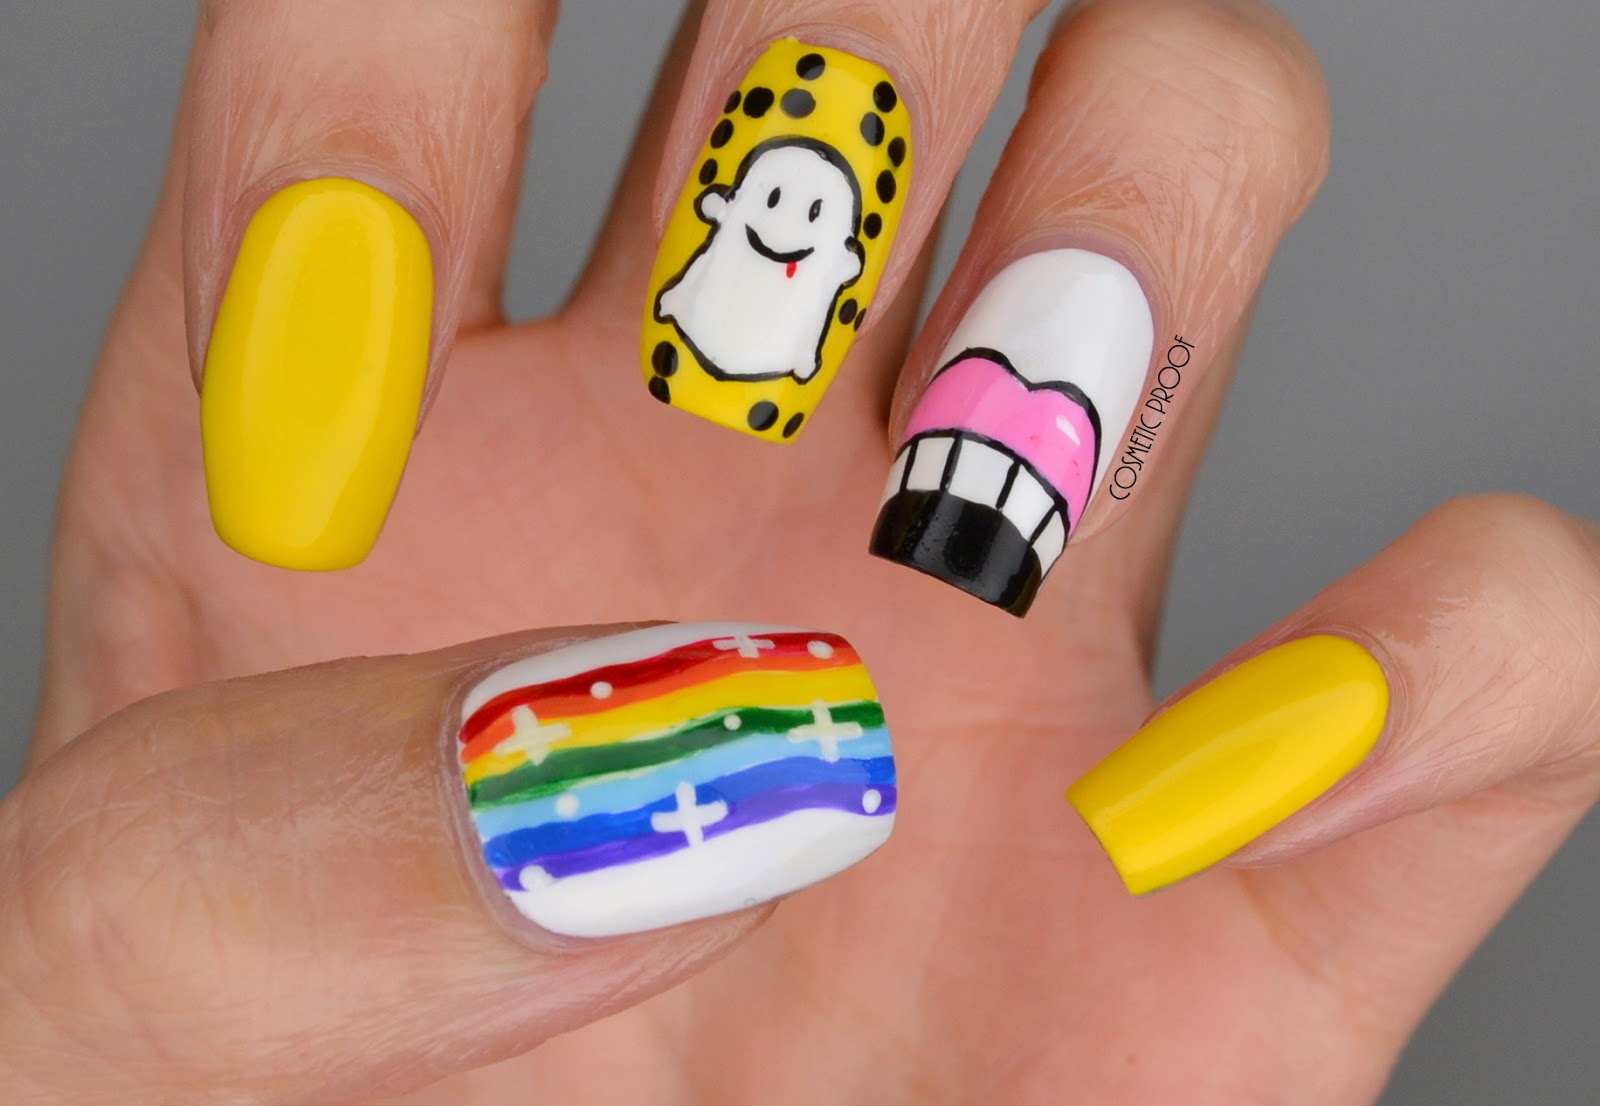 NAILS | Get Ready for Snapchat Nail Art for #ManiMonday! | Cosmetic ...